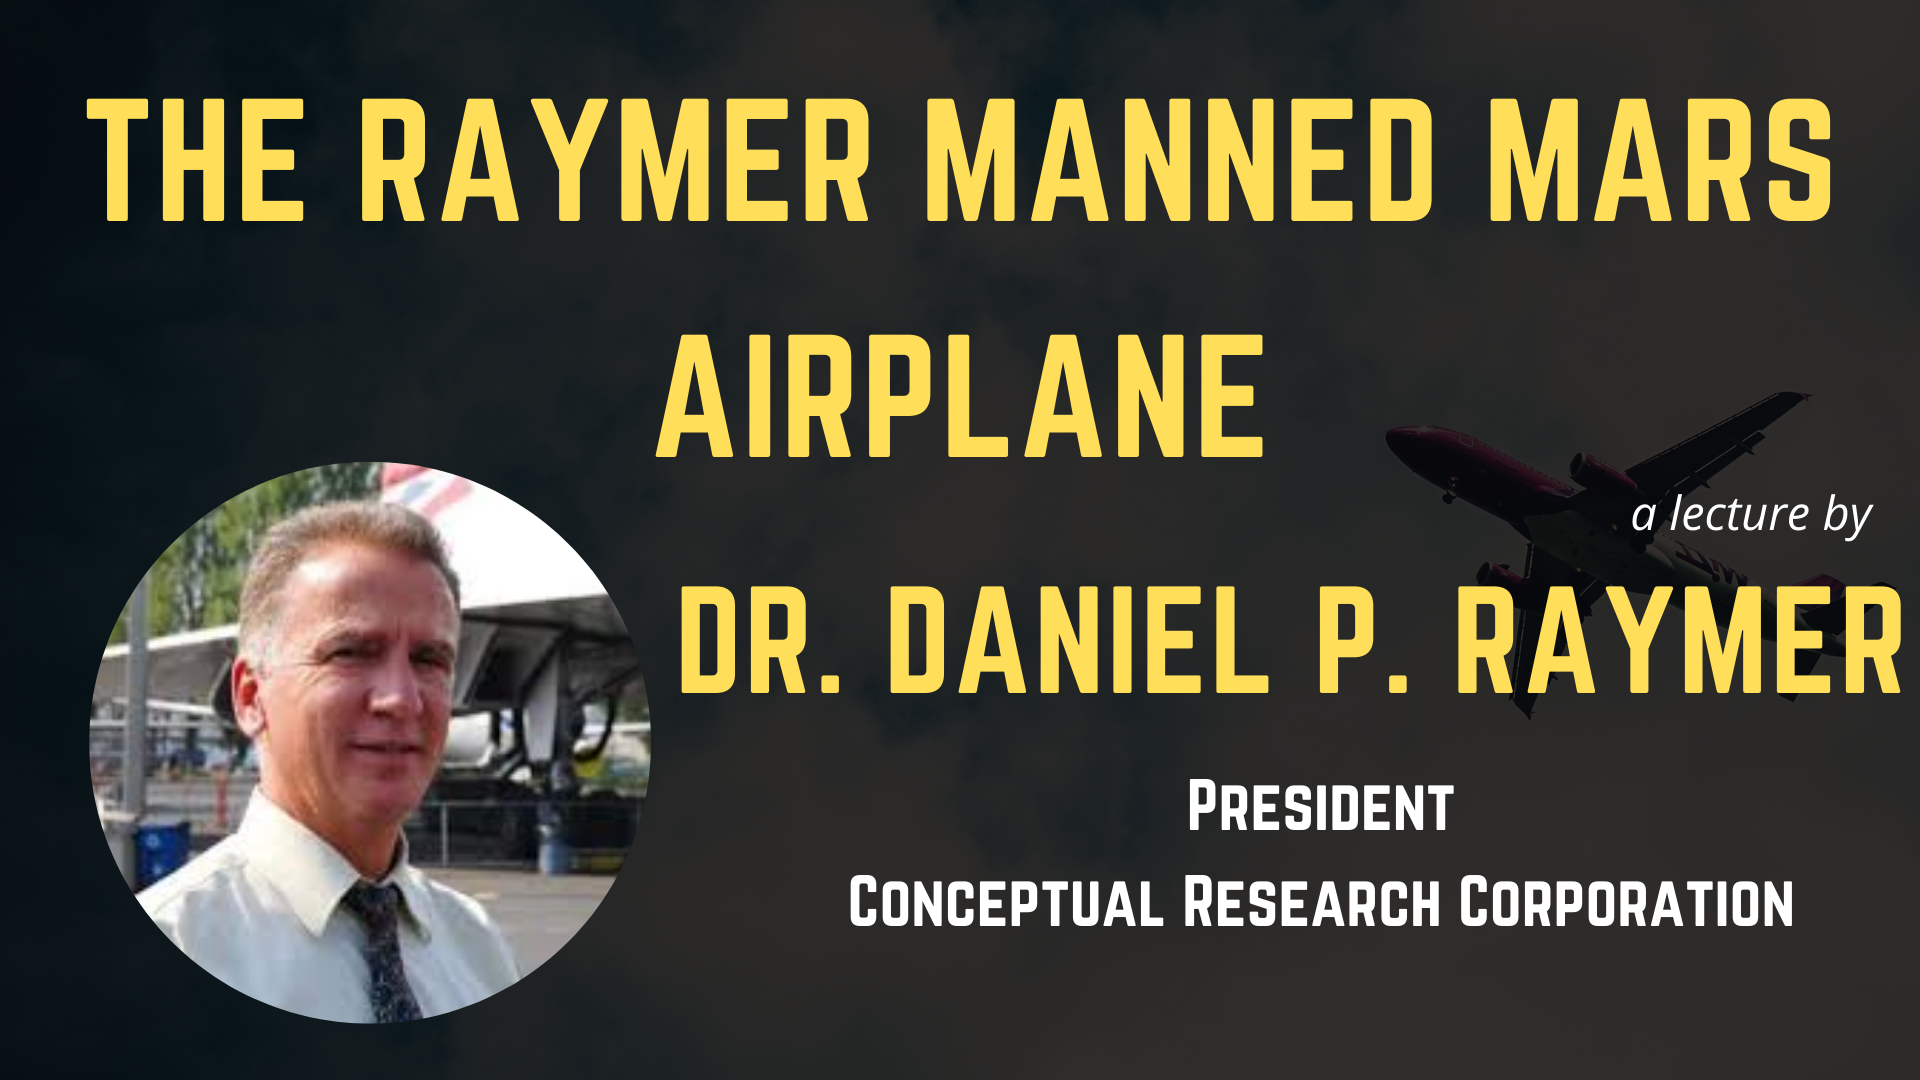 Raymer's Manned MARS Airplane